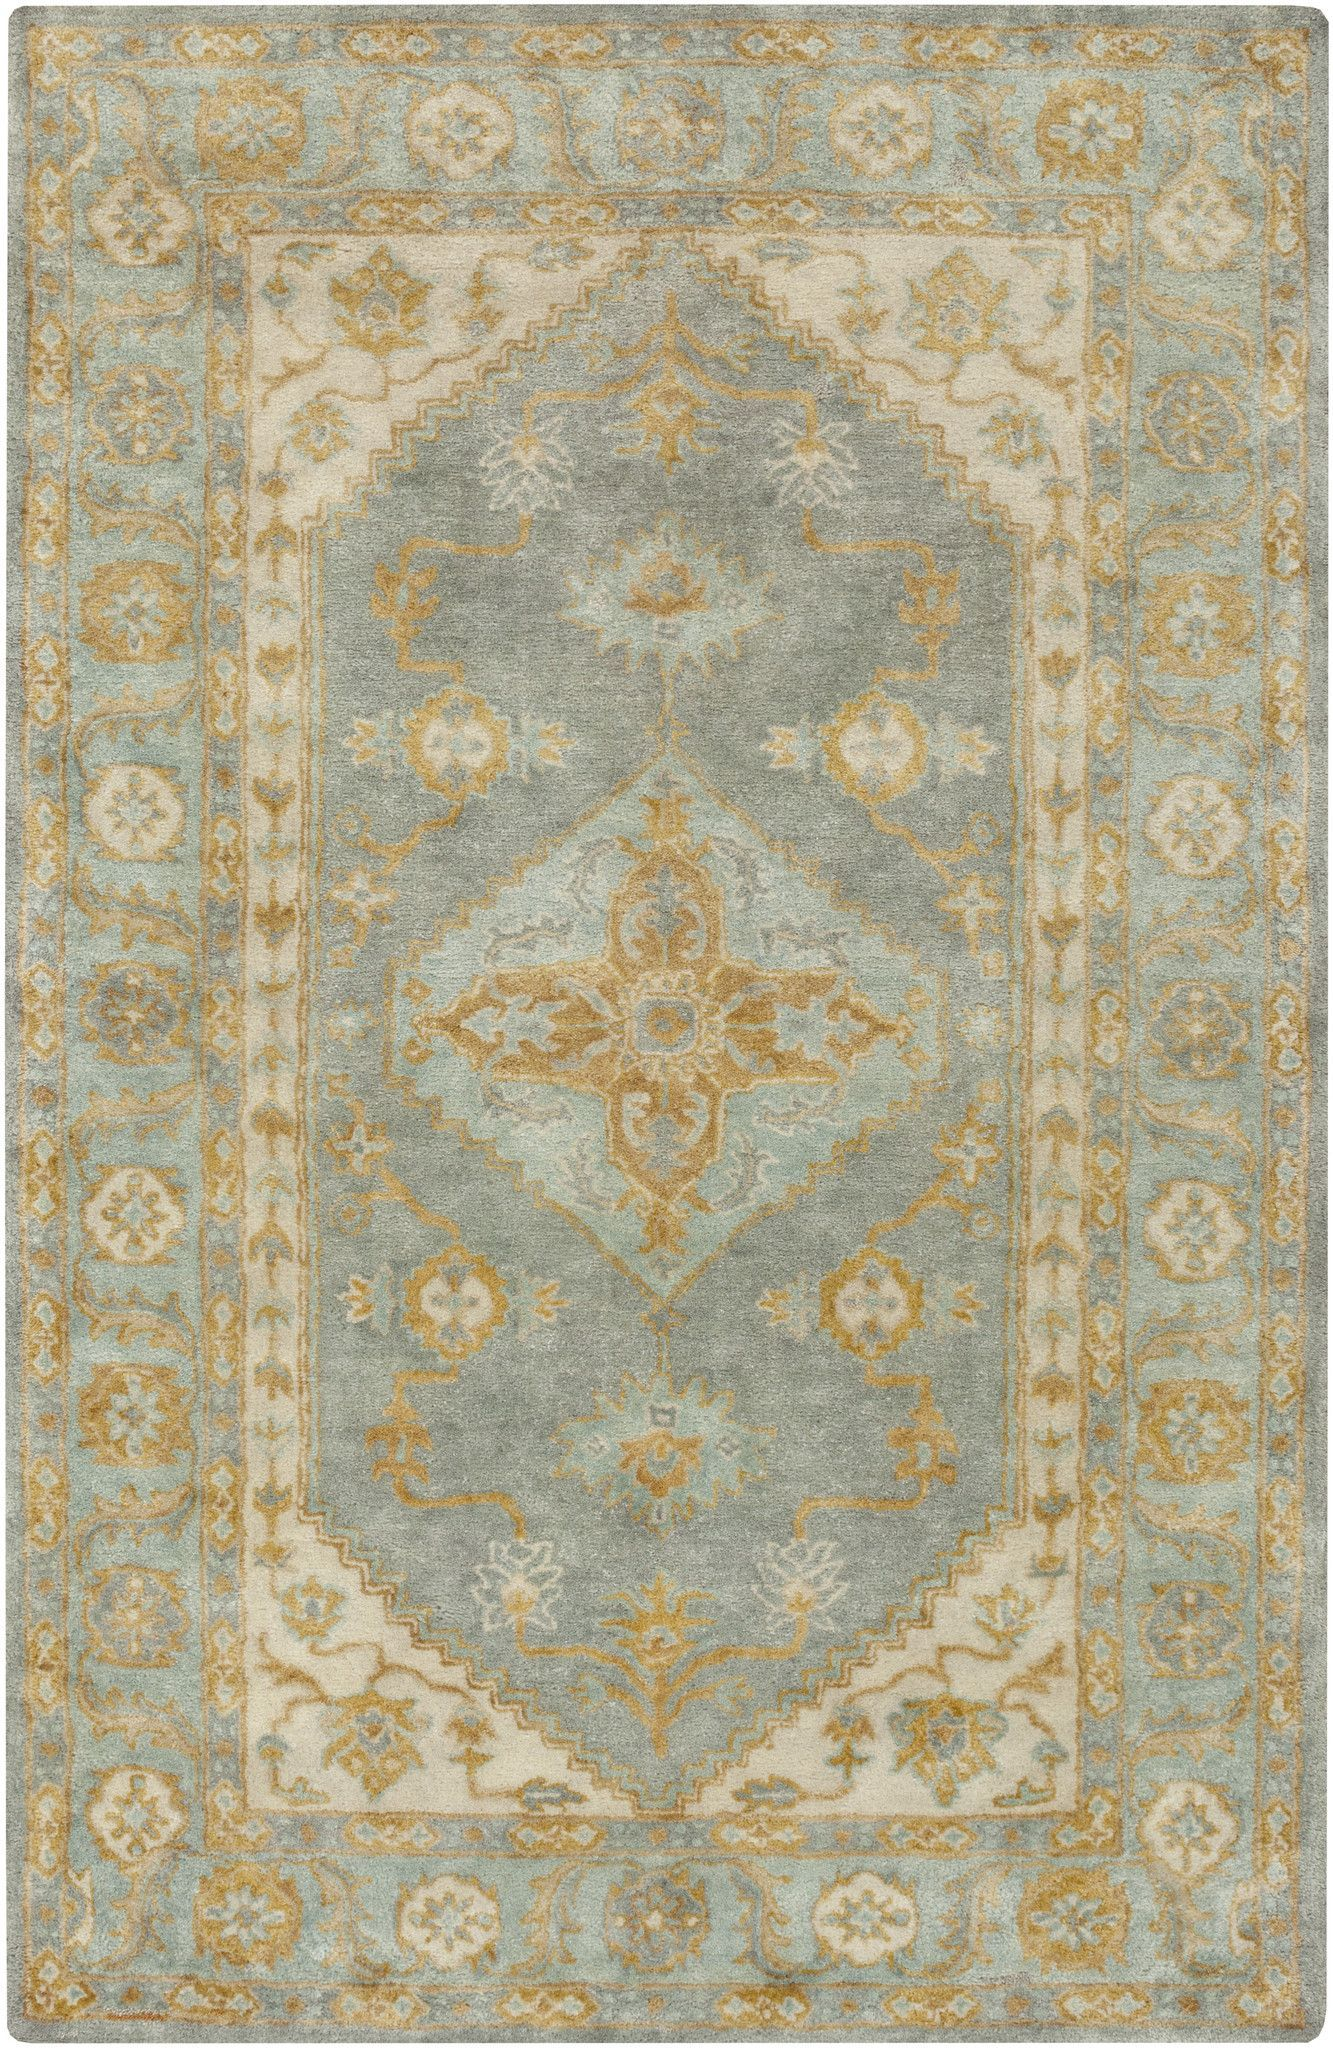 Relic Classic Area Rug Blue Green Area Rugs Traditional Area Rugs Area Rug Collections